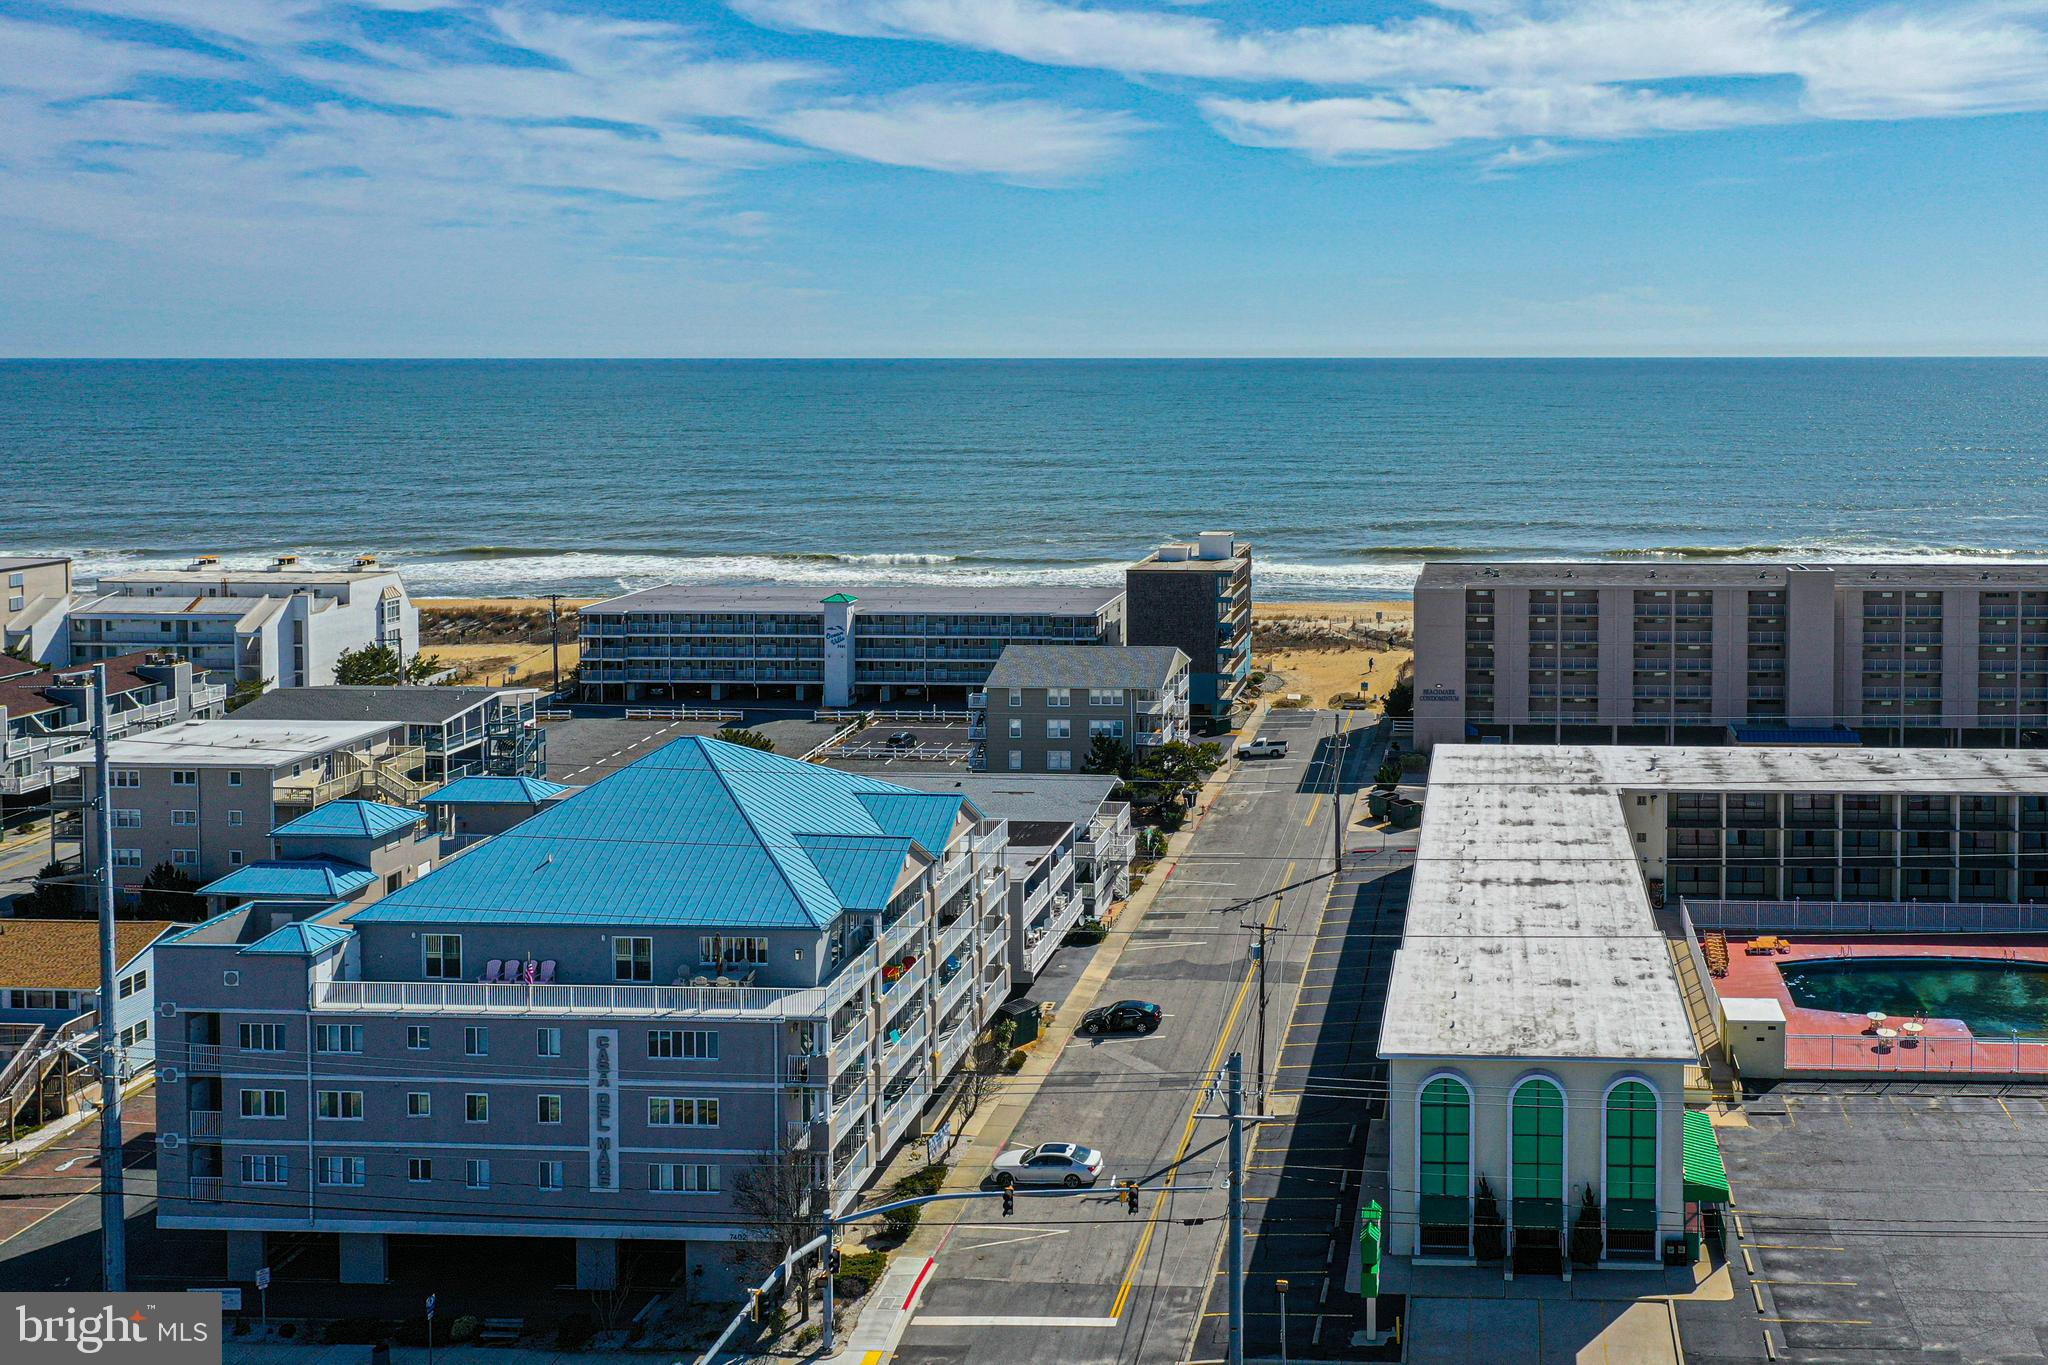 Amazing 3 bed 3 full bath Southern Exposure condo with both bay and ocean views!  The spacious open floorplan offers kitchen with newer appliances, breakfast area, living room, gas fireplace, laundry room, covered parking, secured building, outdoor shower, and private storage closet.  Great mid-town location Mid-Town within steps to Ocean City Beach, shopping, restaurants, entertainment, and easy access to rt. 90.  This one will not last long.  Call for a private showing today.